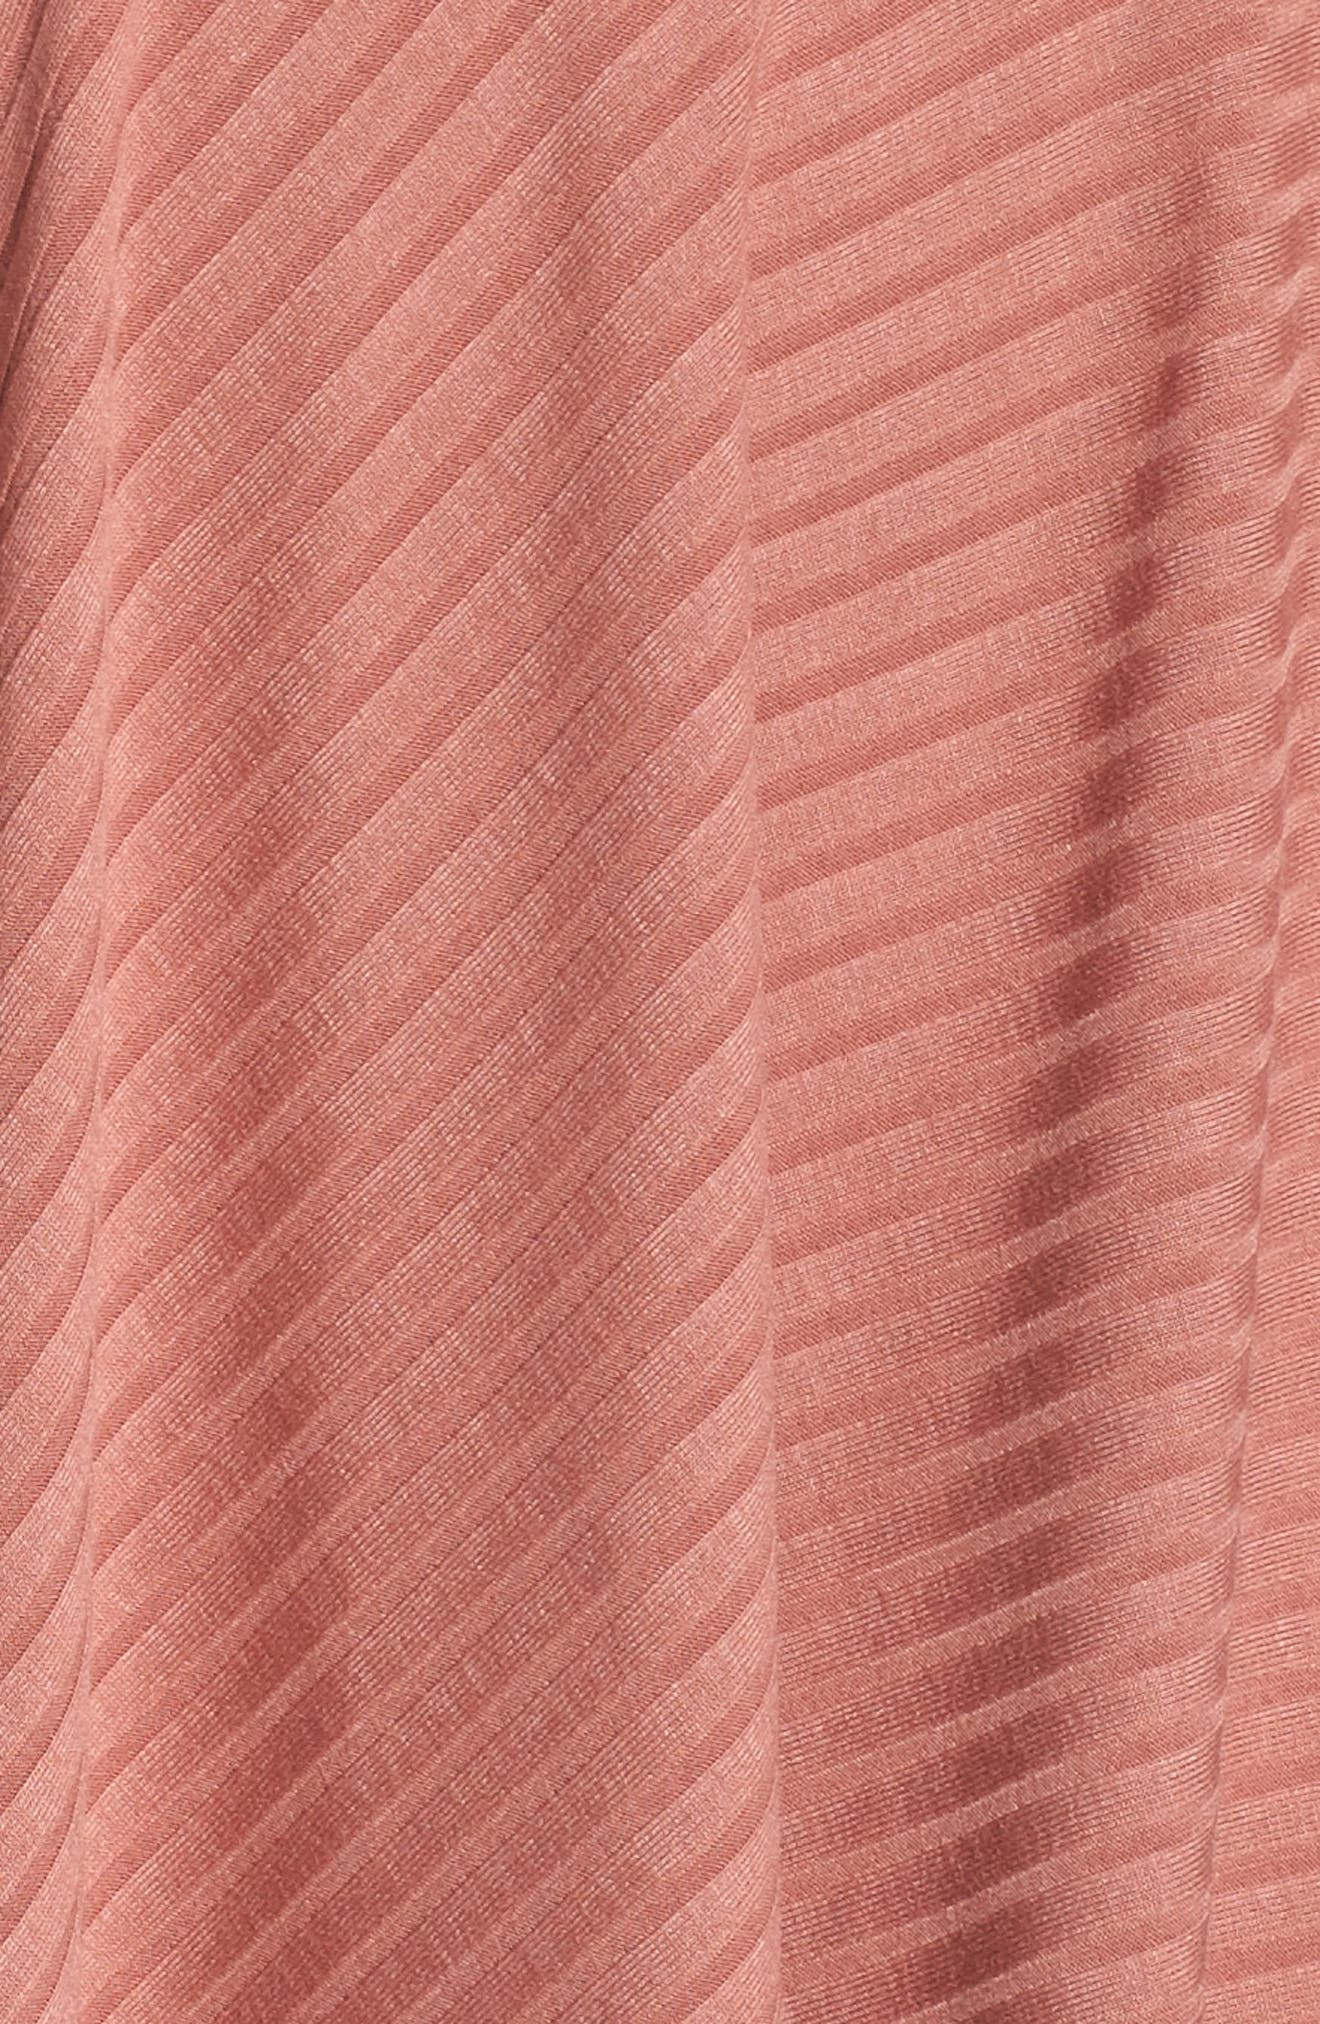 Asymmetrical Ribbed Off the Shoulder Dress,                             Alternate thumbnail 6, color,                             Blush